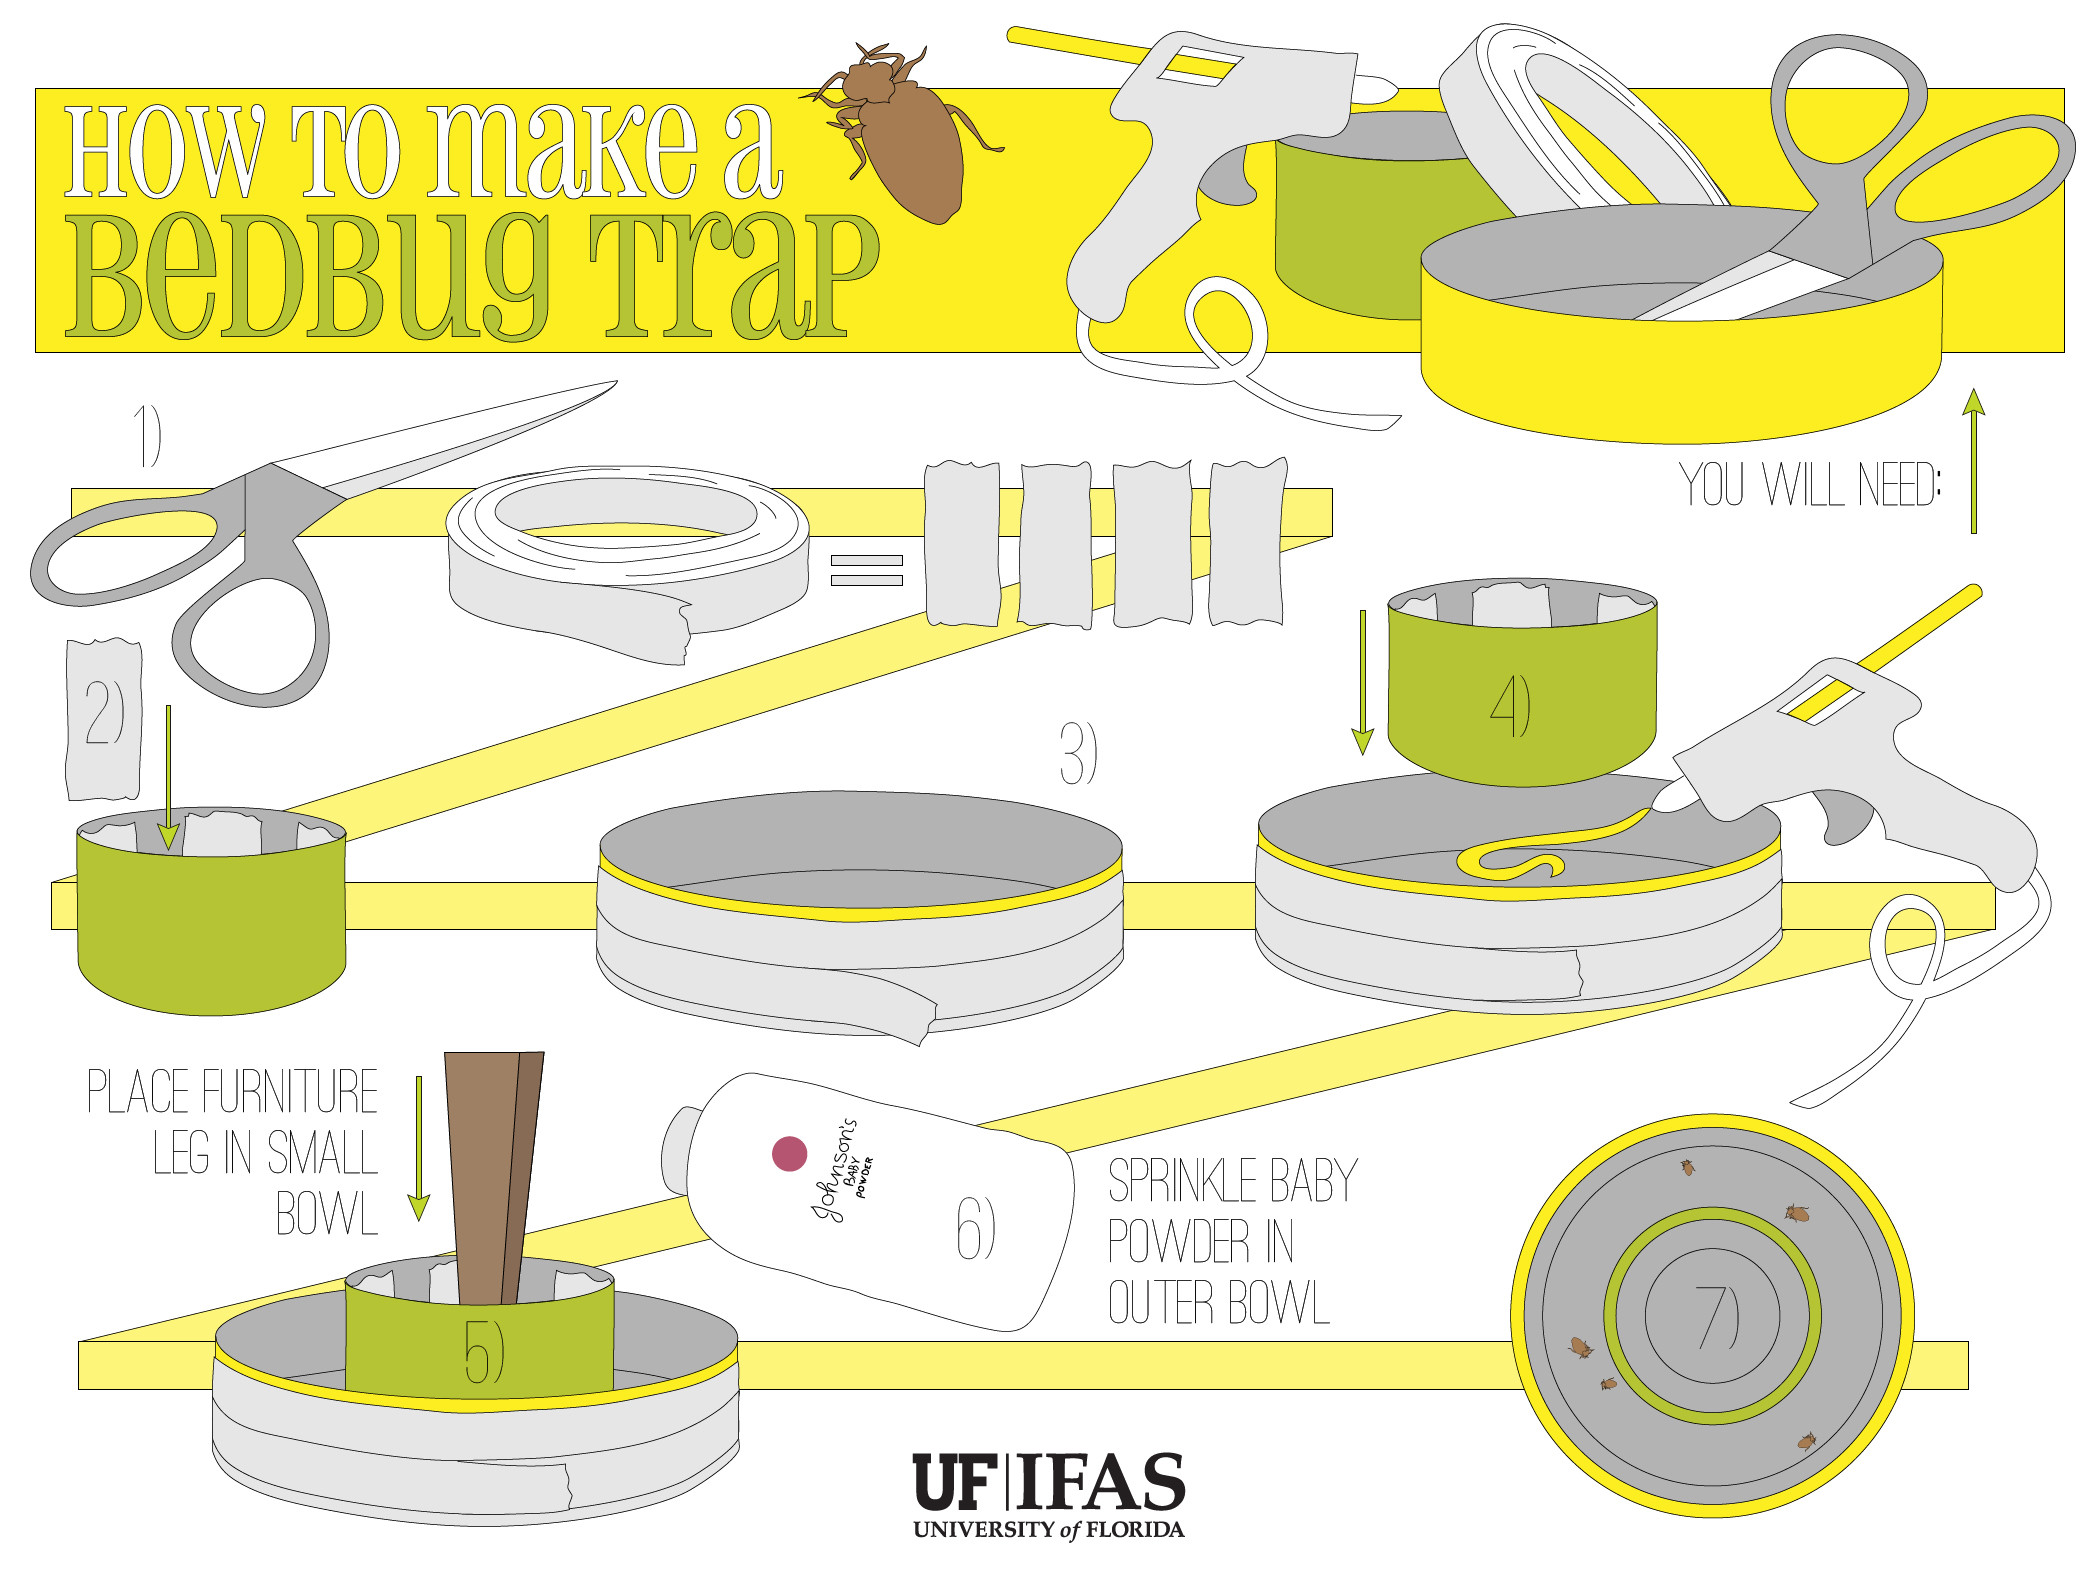 Best ideas about Bed Bug Trap DIY . Save or Pin Step by step directions for homemade bedbug trap designed Now.